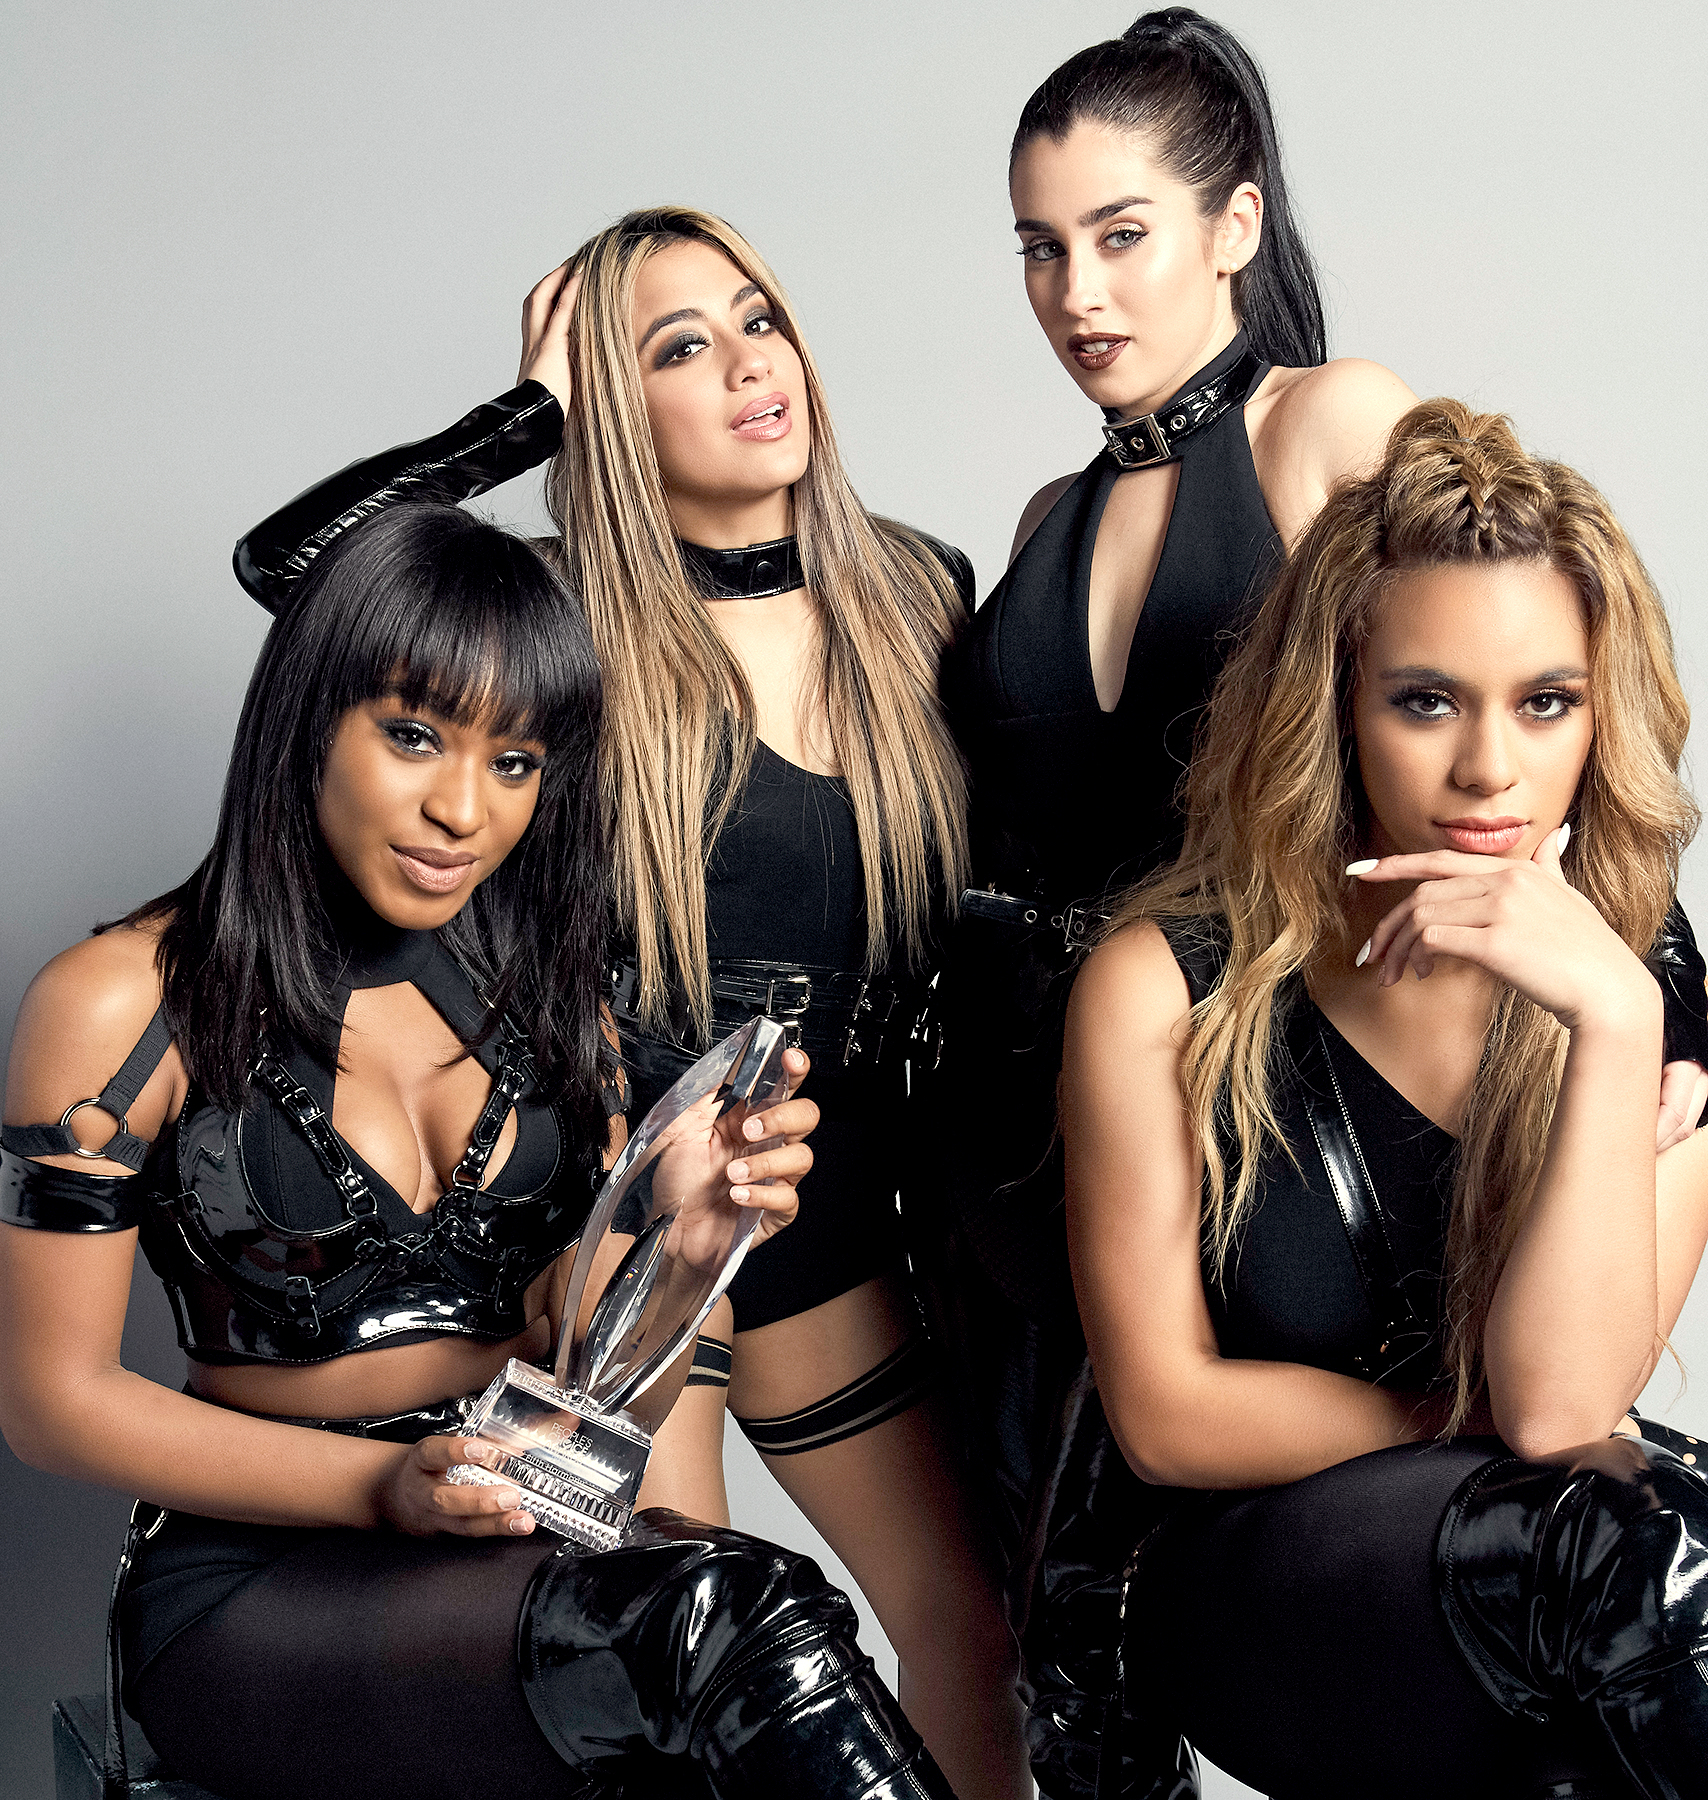 Fifth Harmony, Normani Kordei, Lauren Jauregui, Ally Brooke, and Dinah Jane, pose for a portrait at the 2017 People's Choice Awards at the Microsoft Theater on January 18, 2017 in Los Angeles, California.